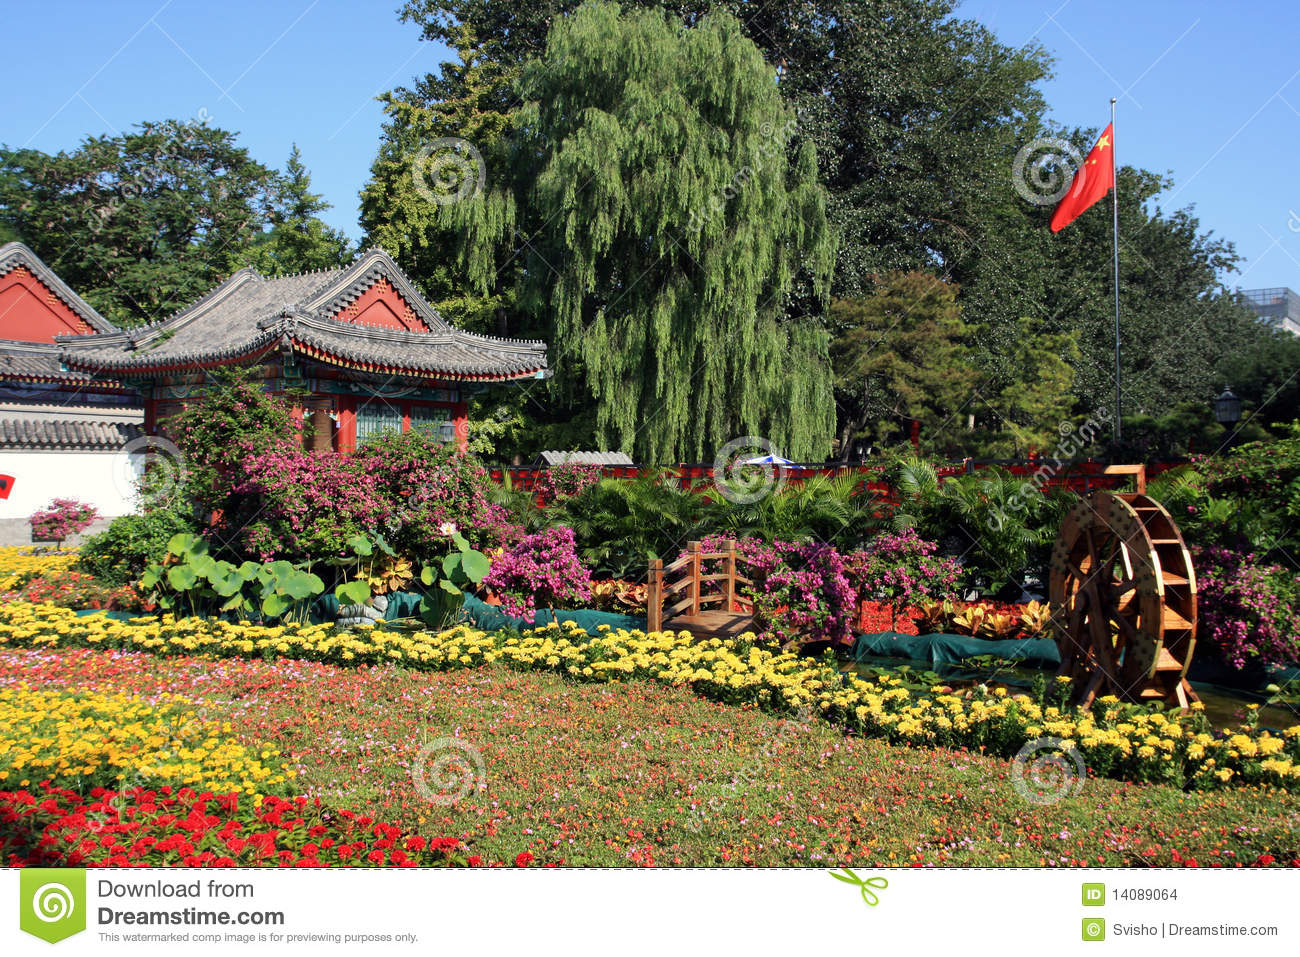 flores coloridas jardim : flores coloridas jardim:Chinese Garden with Flowers